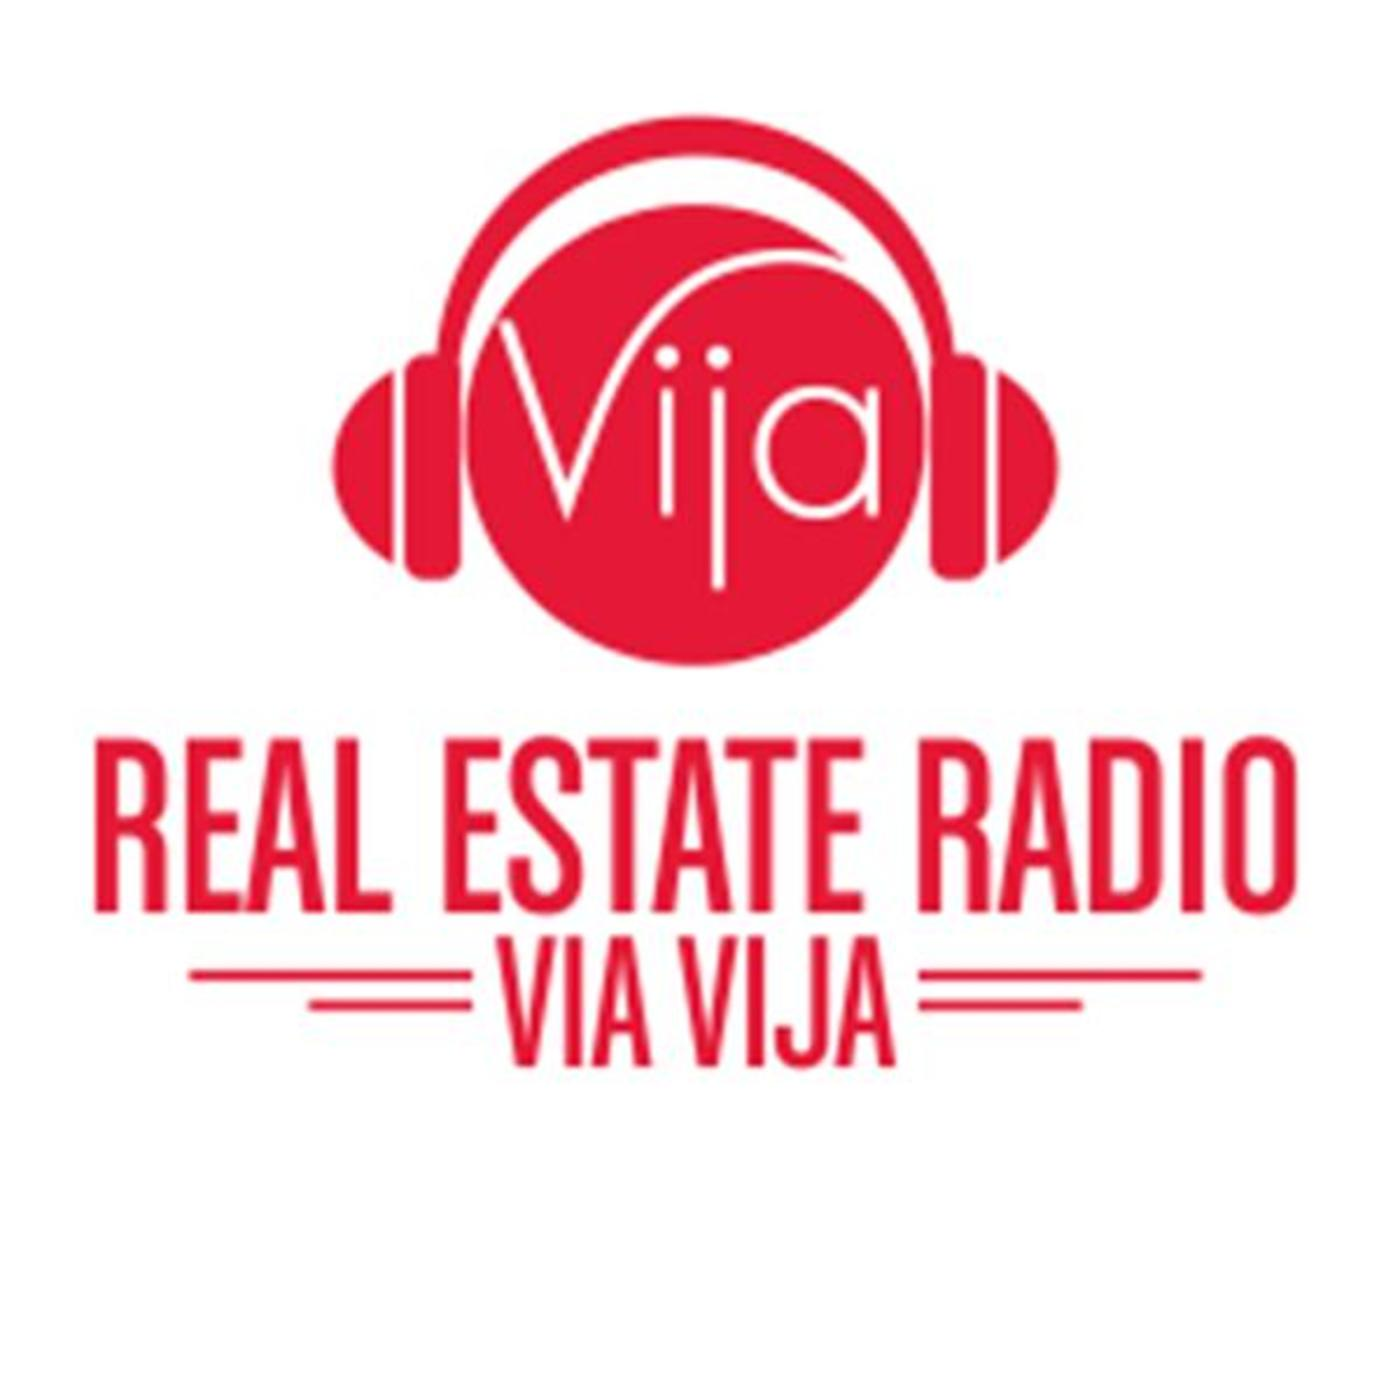 Real Estate Radio VIA VIJA